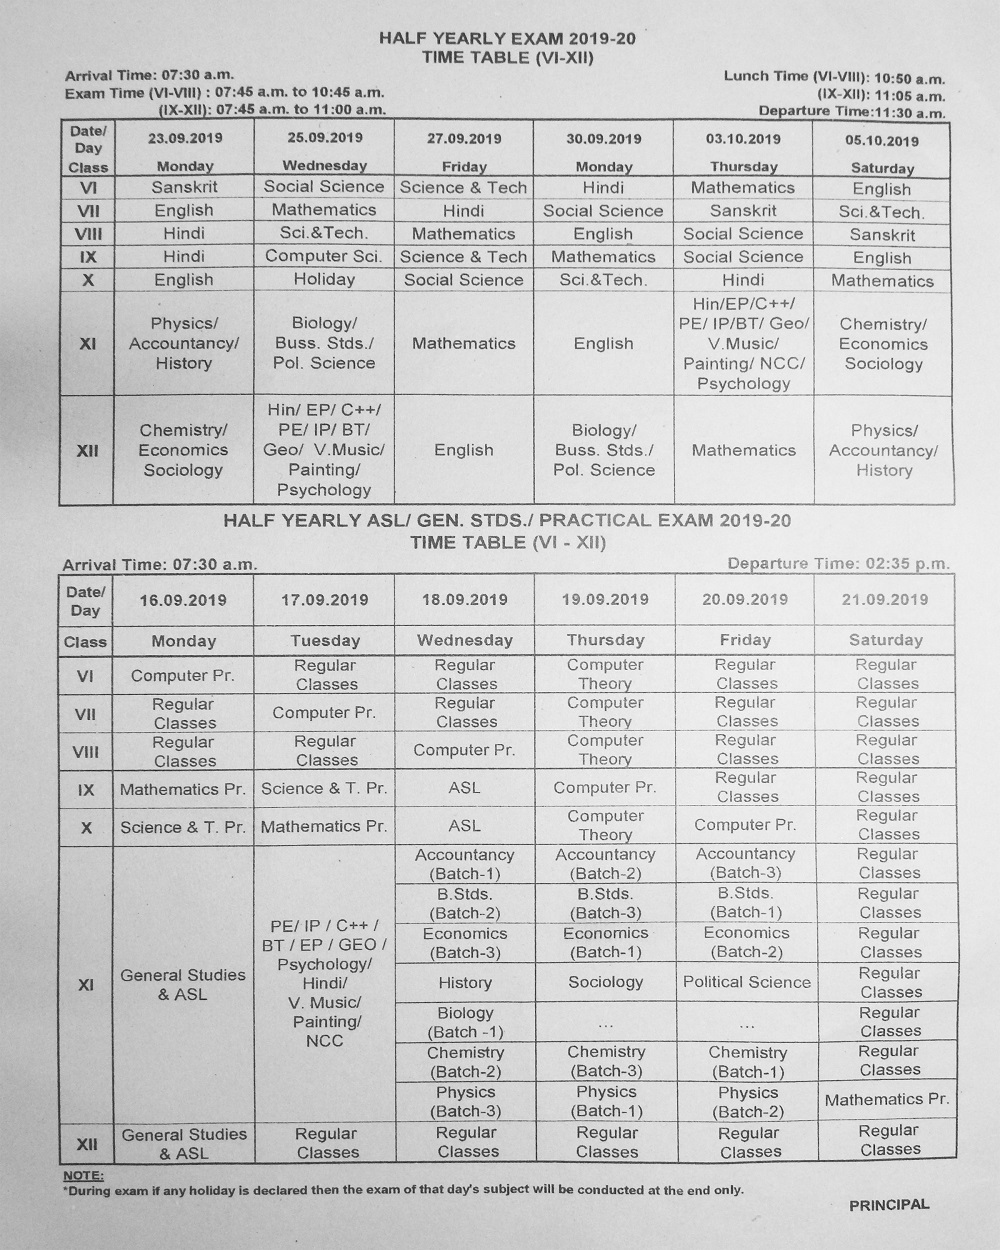 Half Yearly Exam Time Table-2019-20